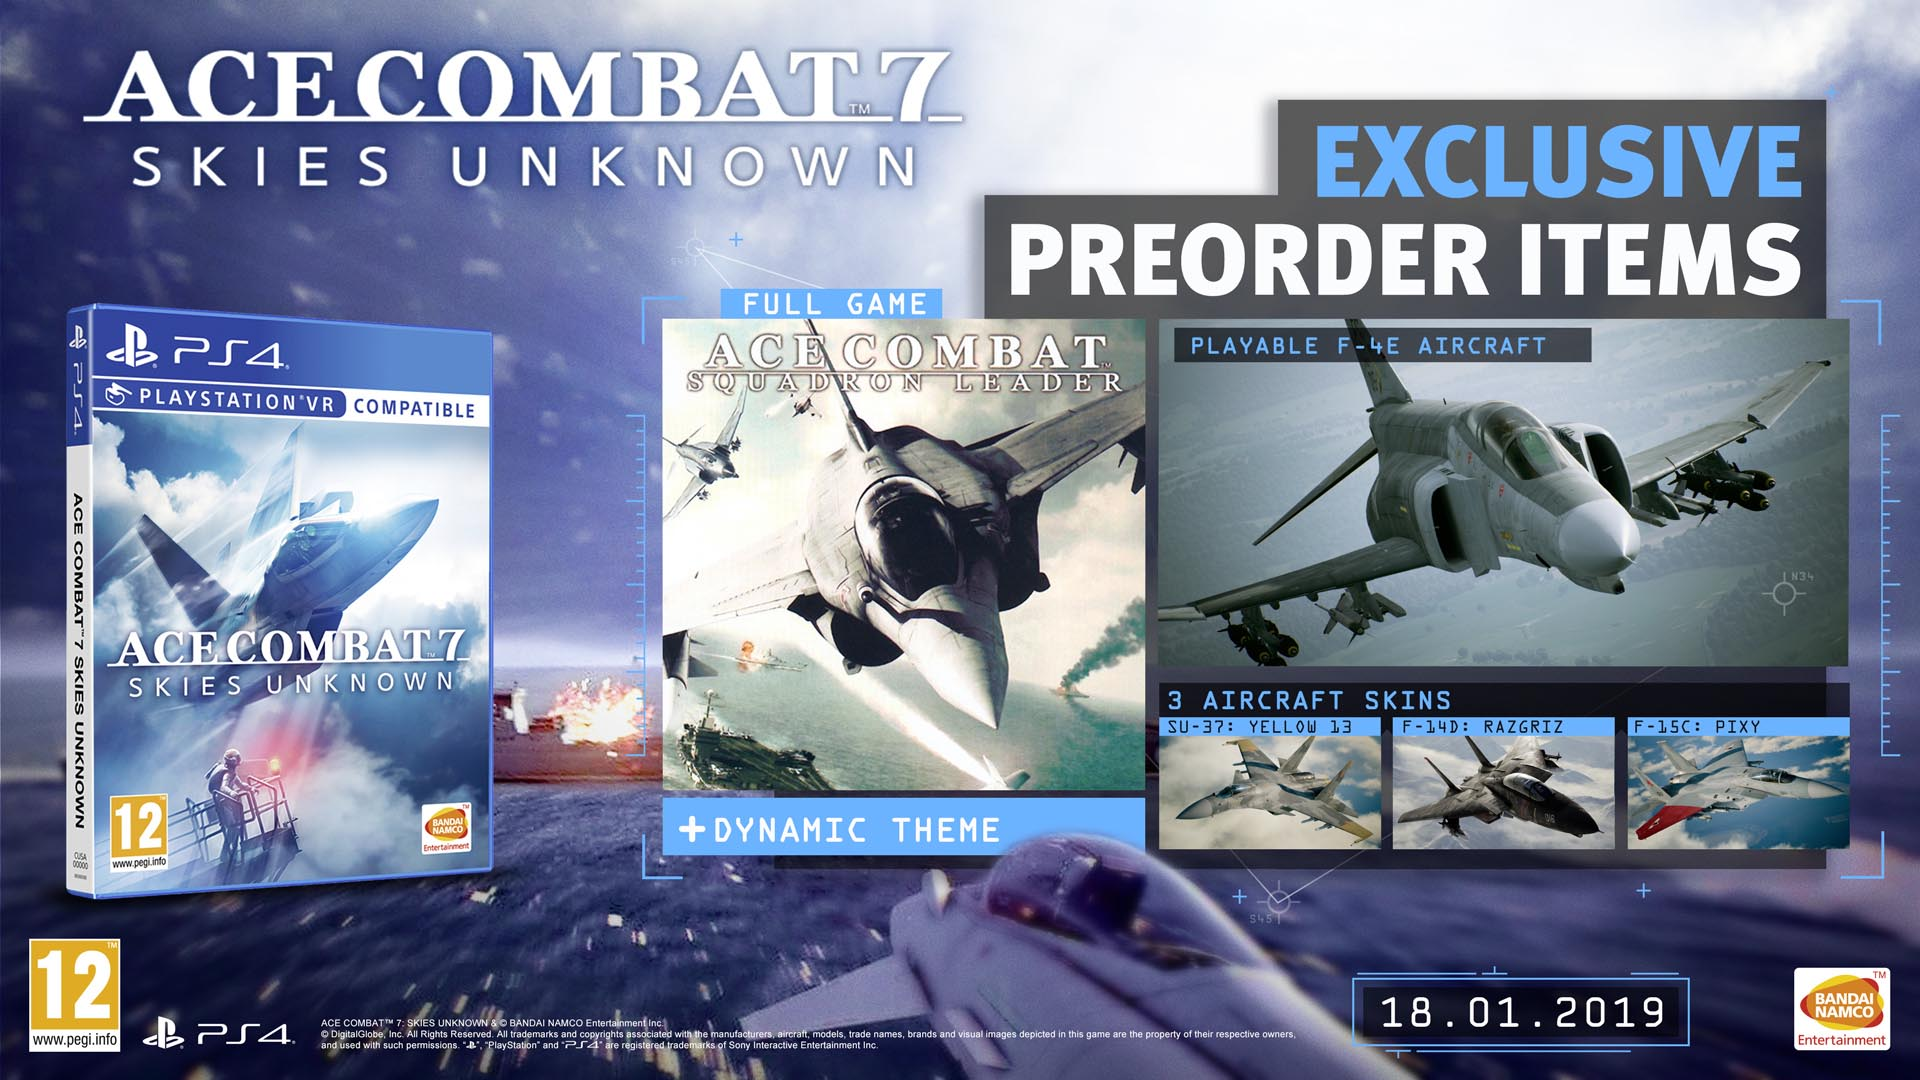 Ace Combat 7 Skies Unknown - PS4 - Video Games by Bandai Namco Entertainment The Chelsea Gamer